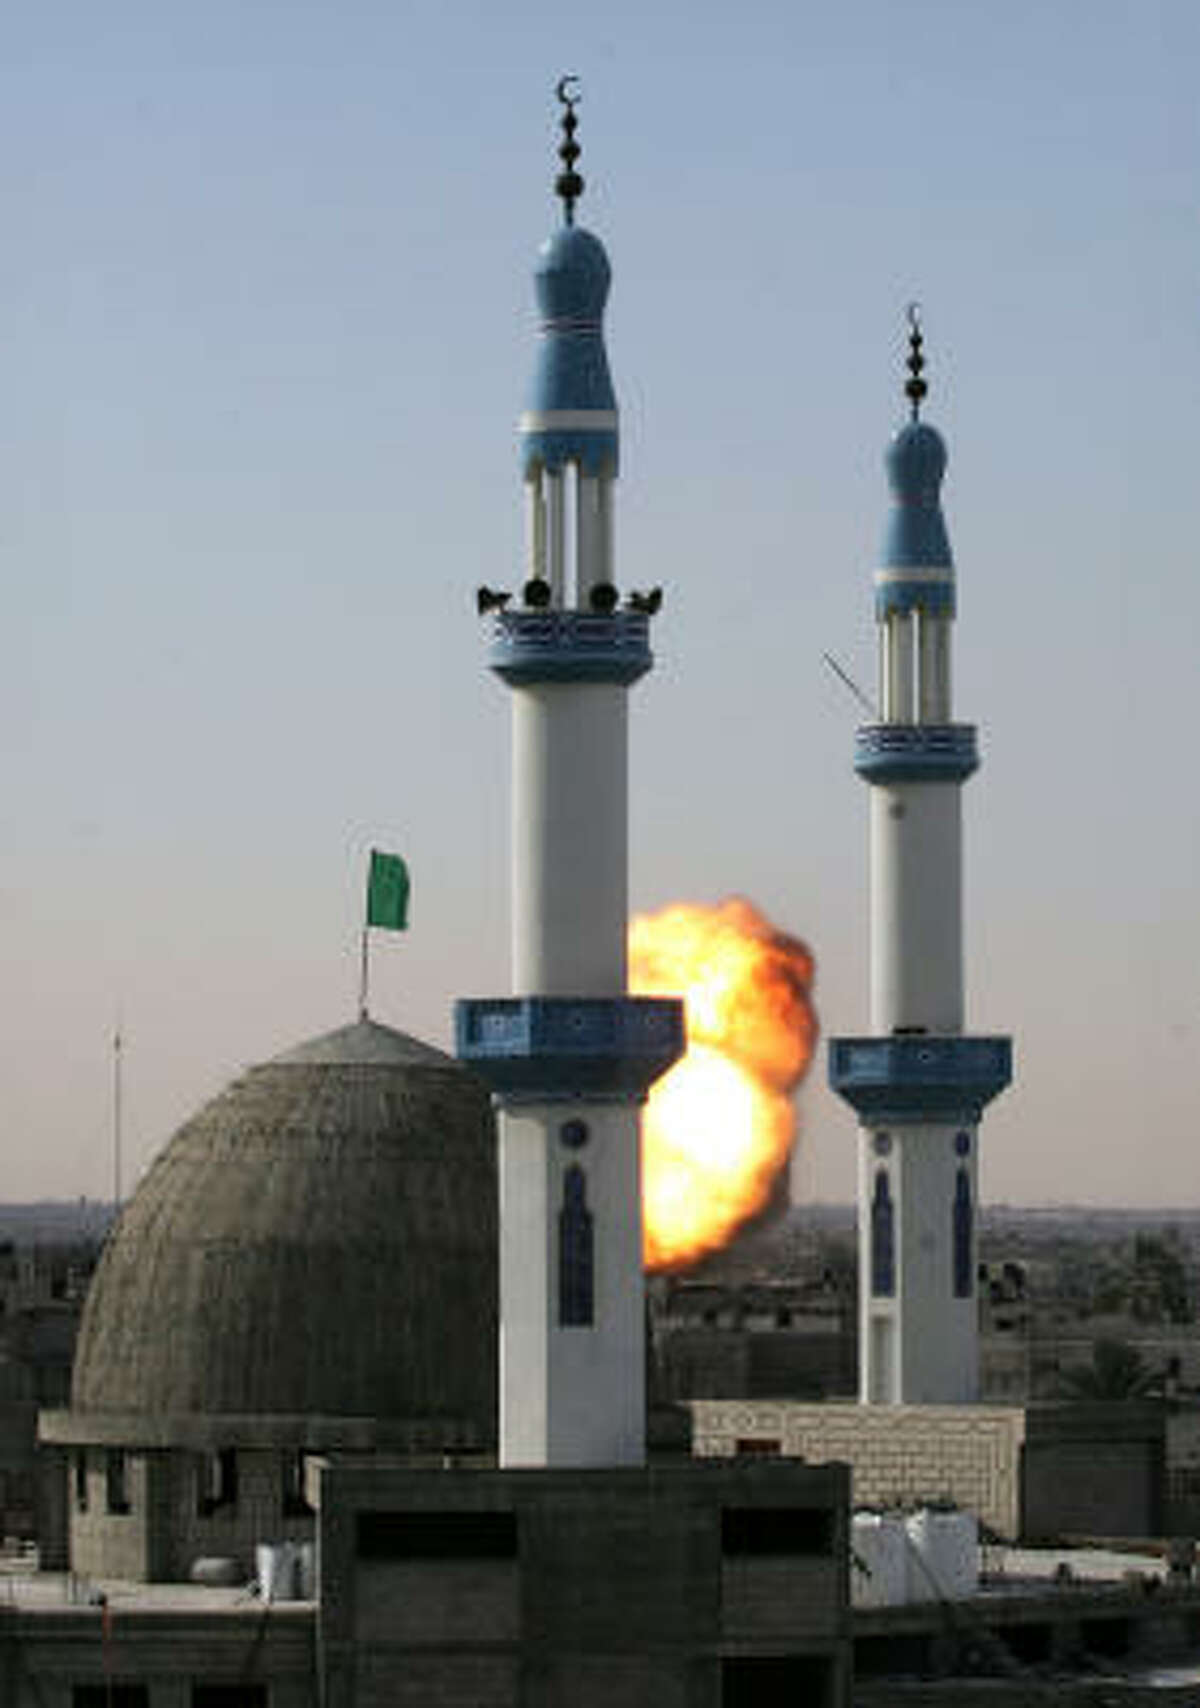 An explosion is seen behind the mosque after the Israeli airstrike in Rafah on Jan. 13.